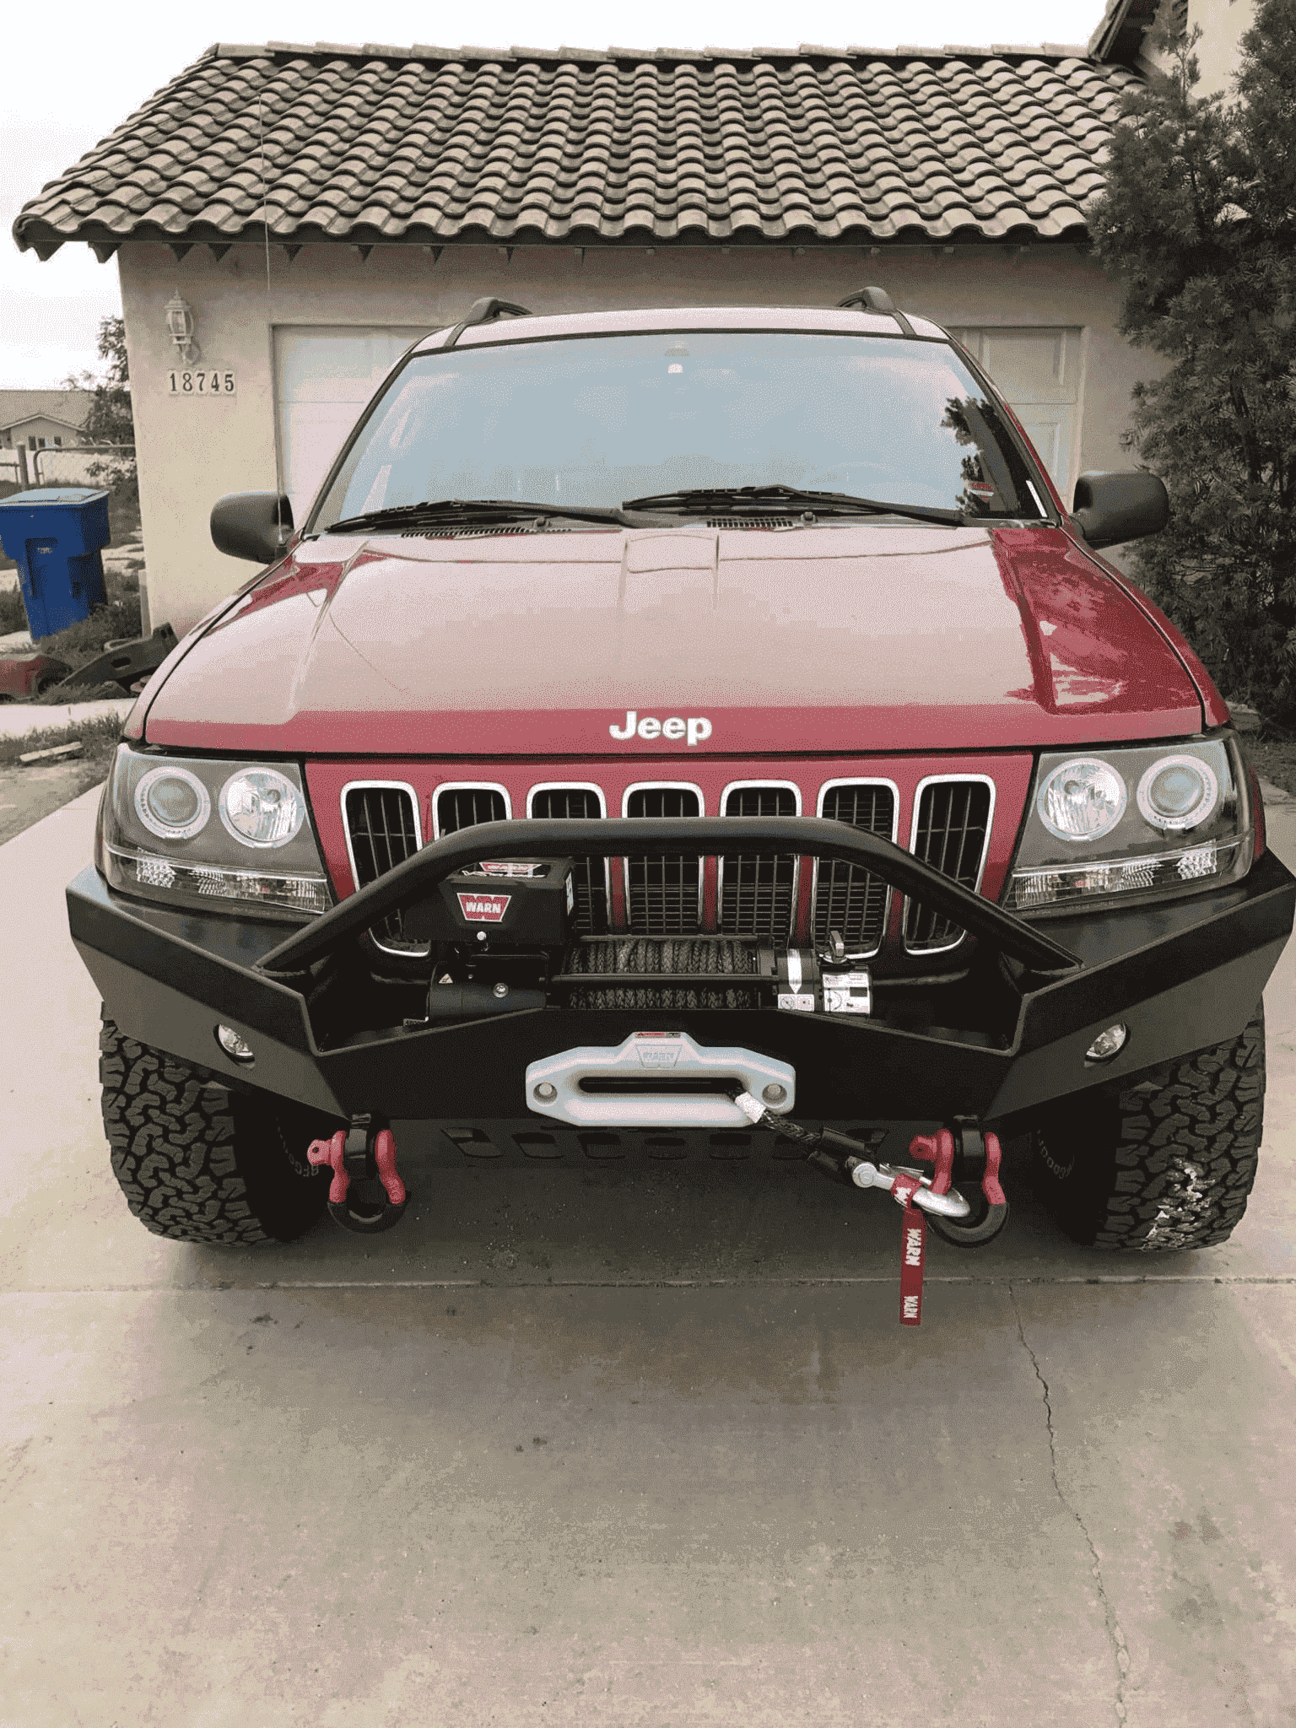 Jeep Wj Bumper Grand Cherokee Wj Rear Bumper W O Tire Carrier Extreme Duty Jeep Wj Jeep Grand Cherokee Jeep Grand